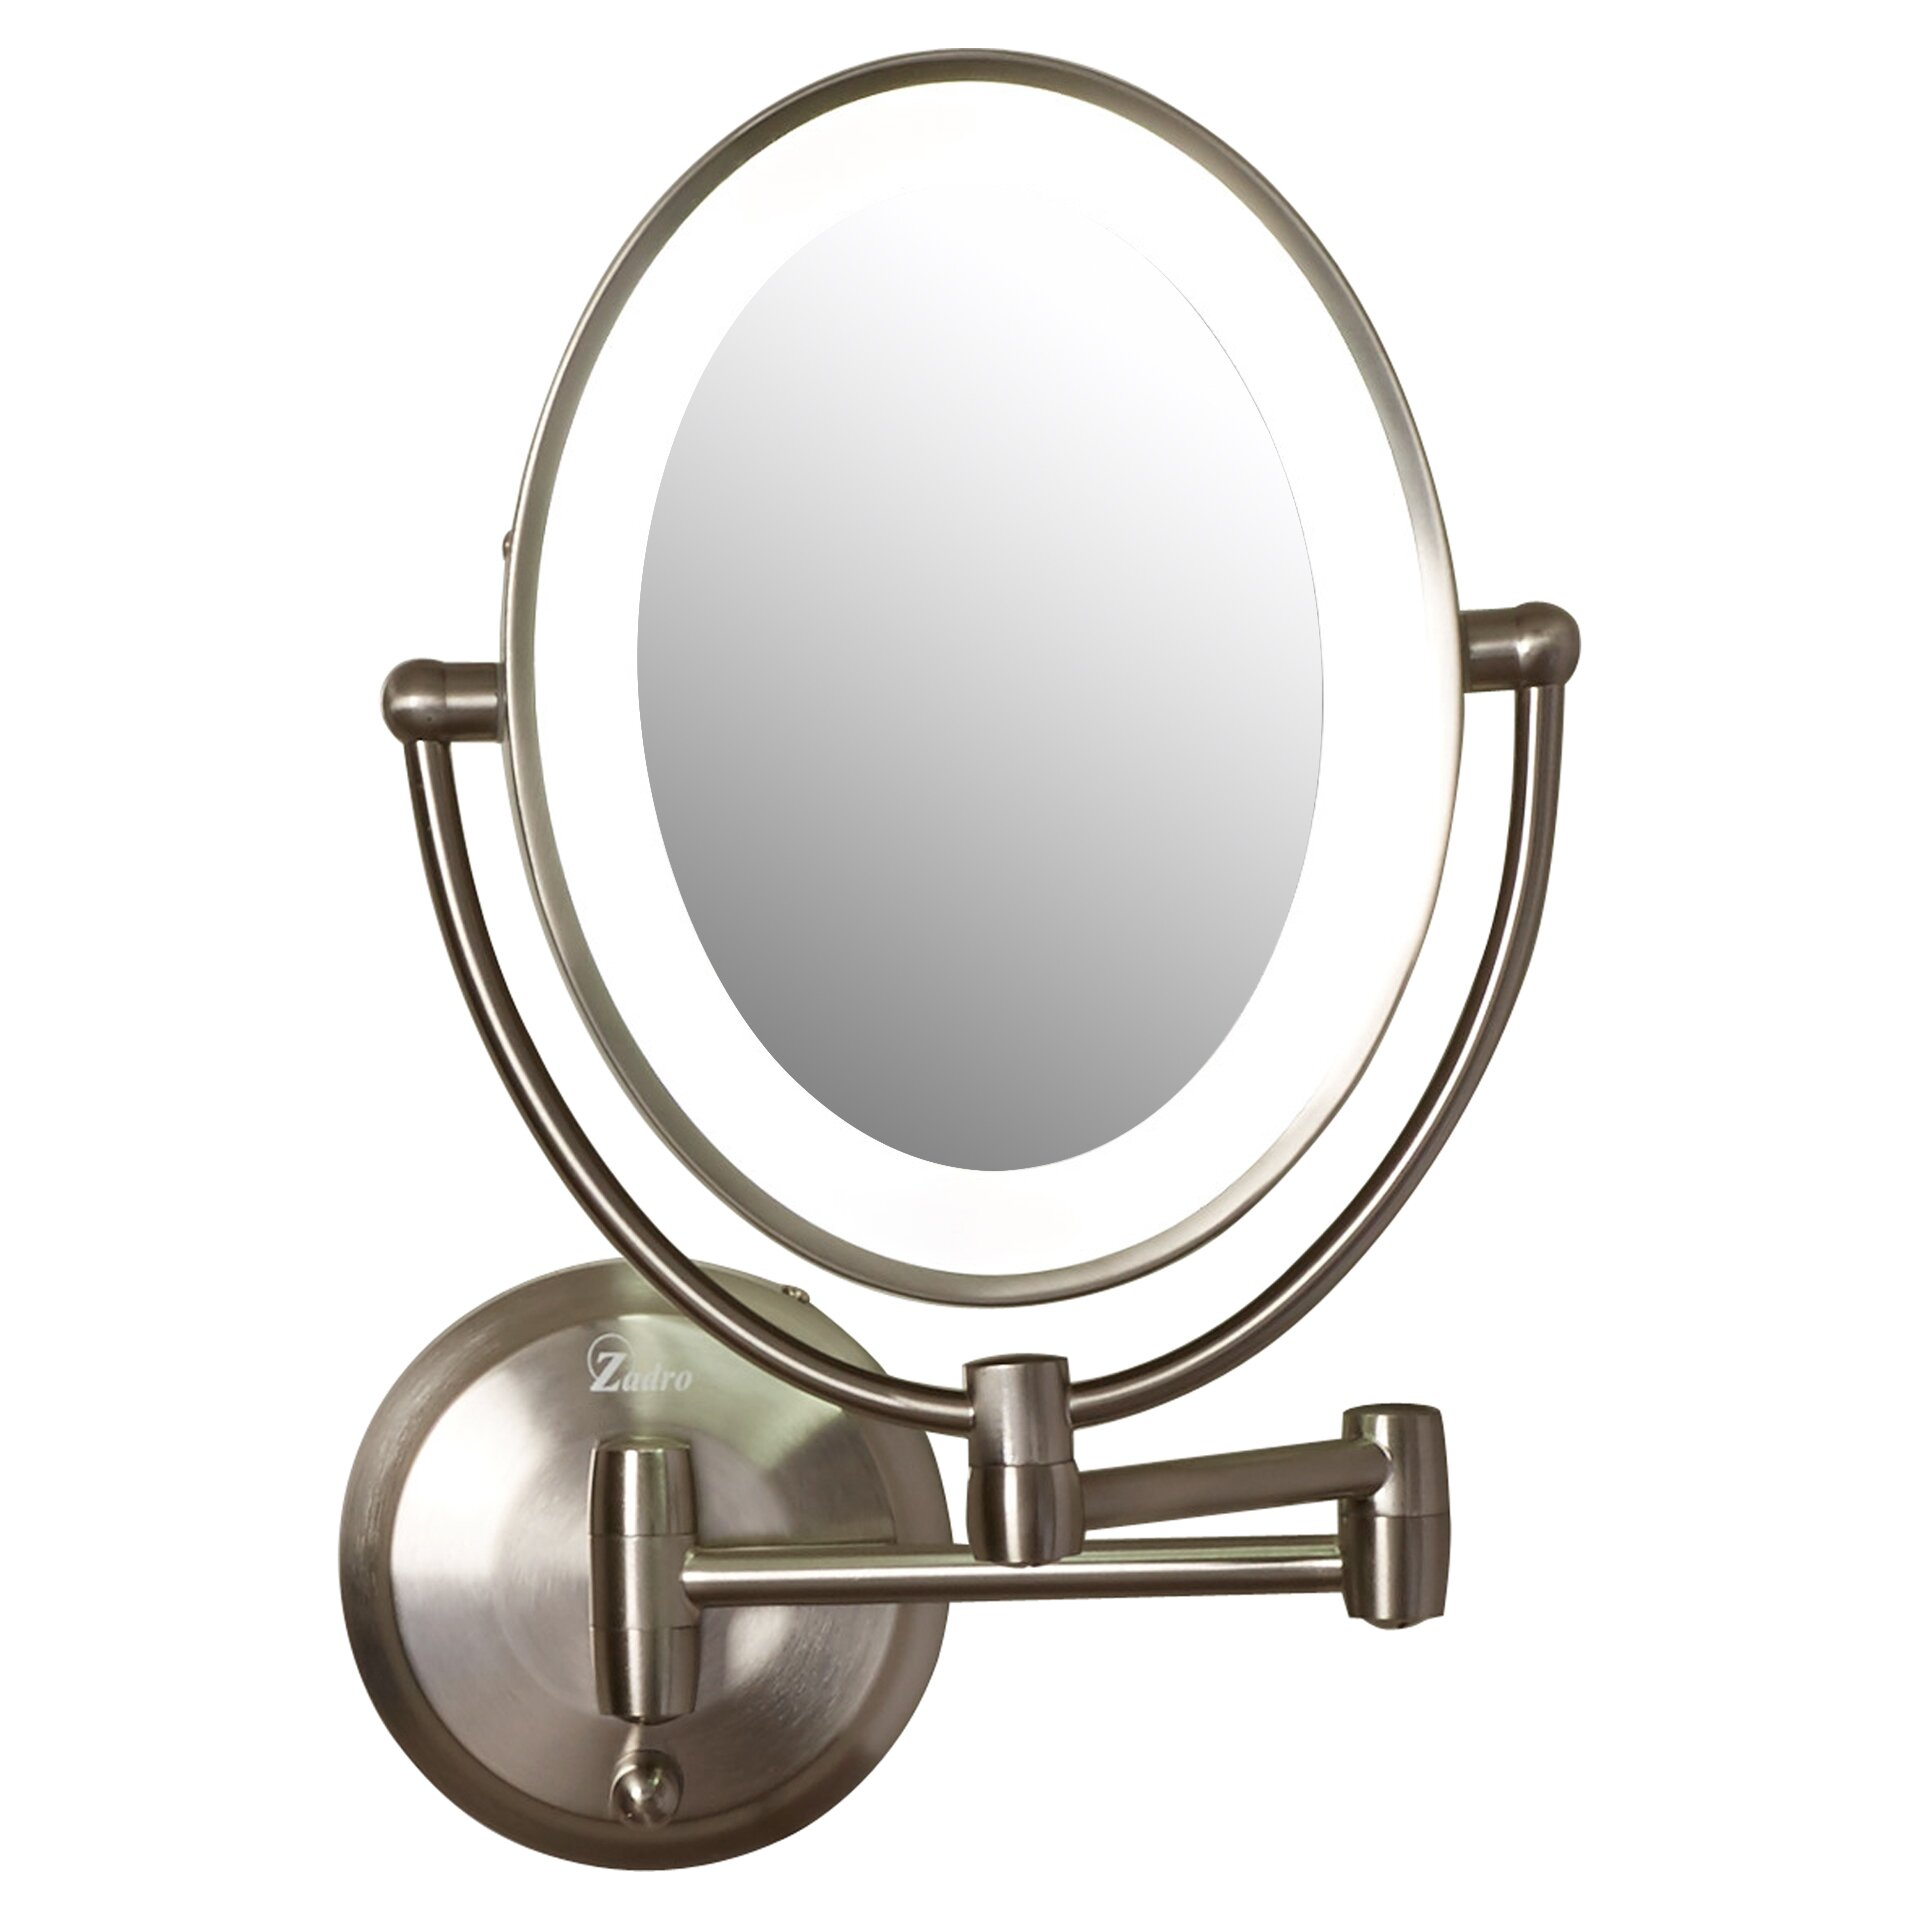 Wall mounted makeup mirror with lights - Mirrors Simplehuman Inch Wall Mounted Sensor Mirror Lighted Makeup